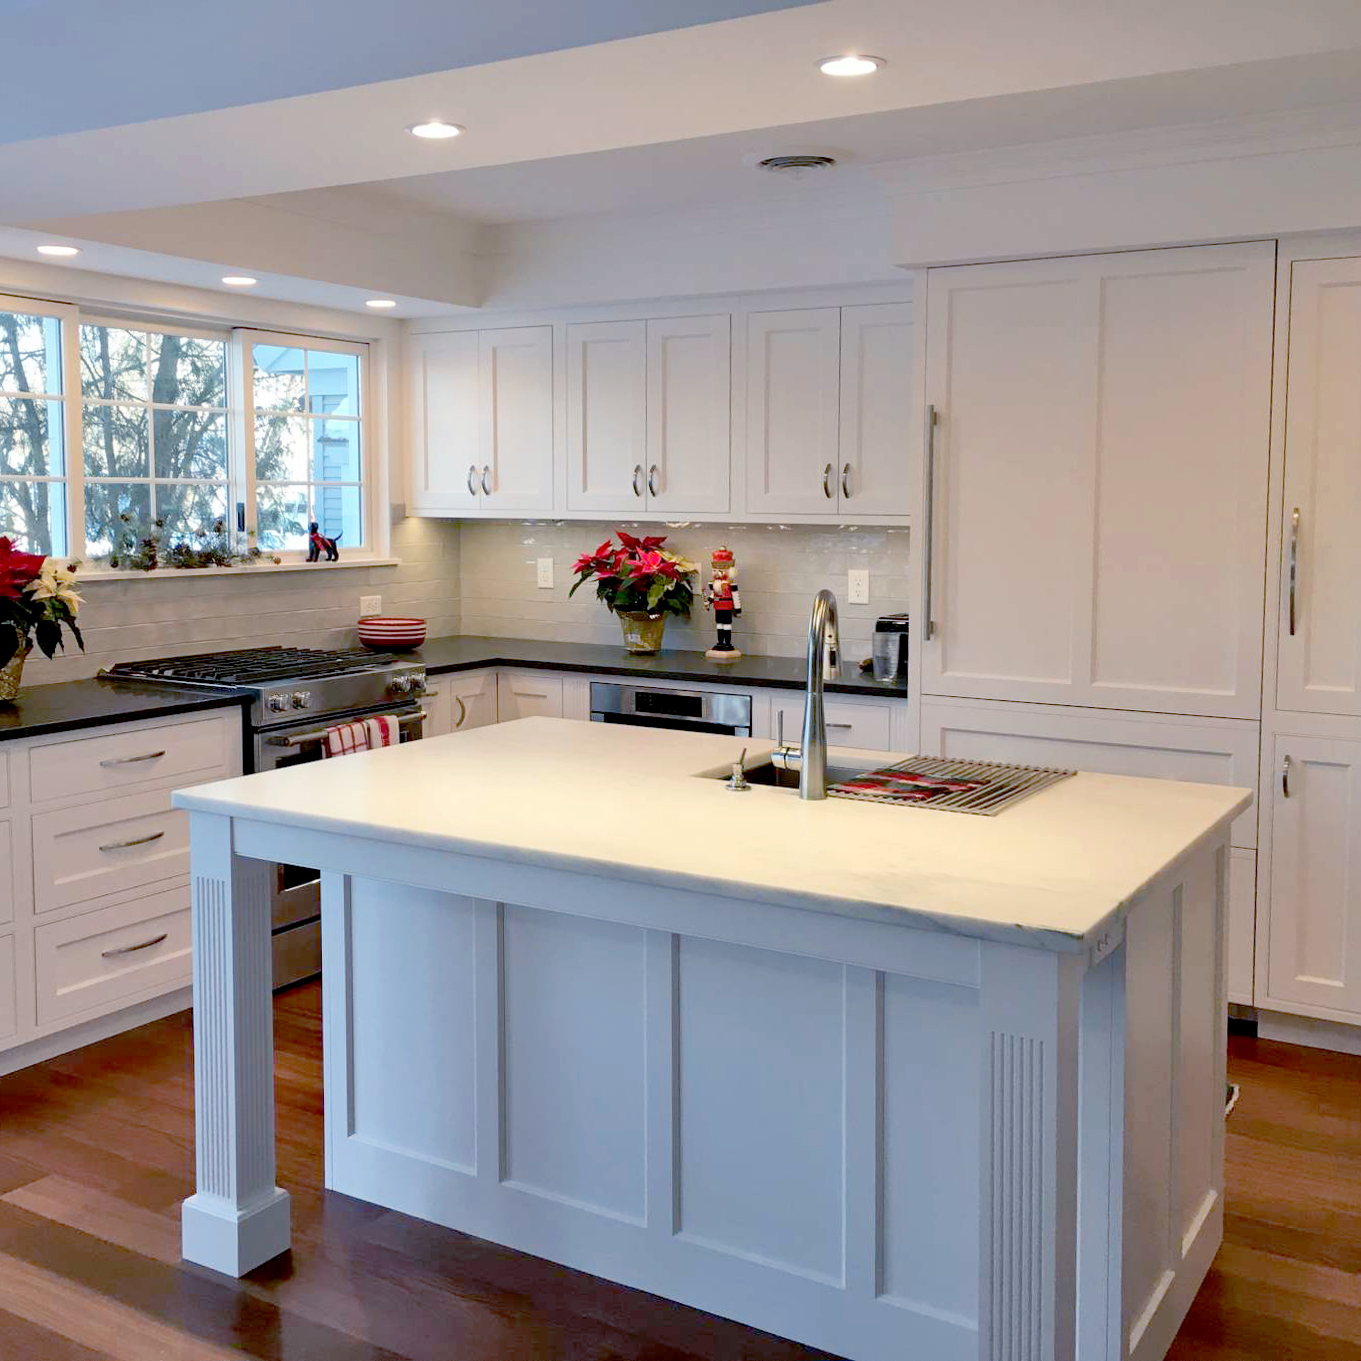 Danby Marble Island Top, Fluted islandLegs, Soffits with Lighting define kitchen area